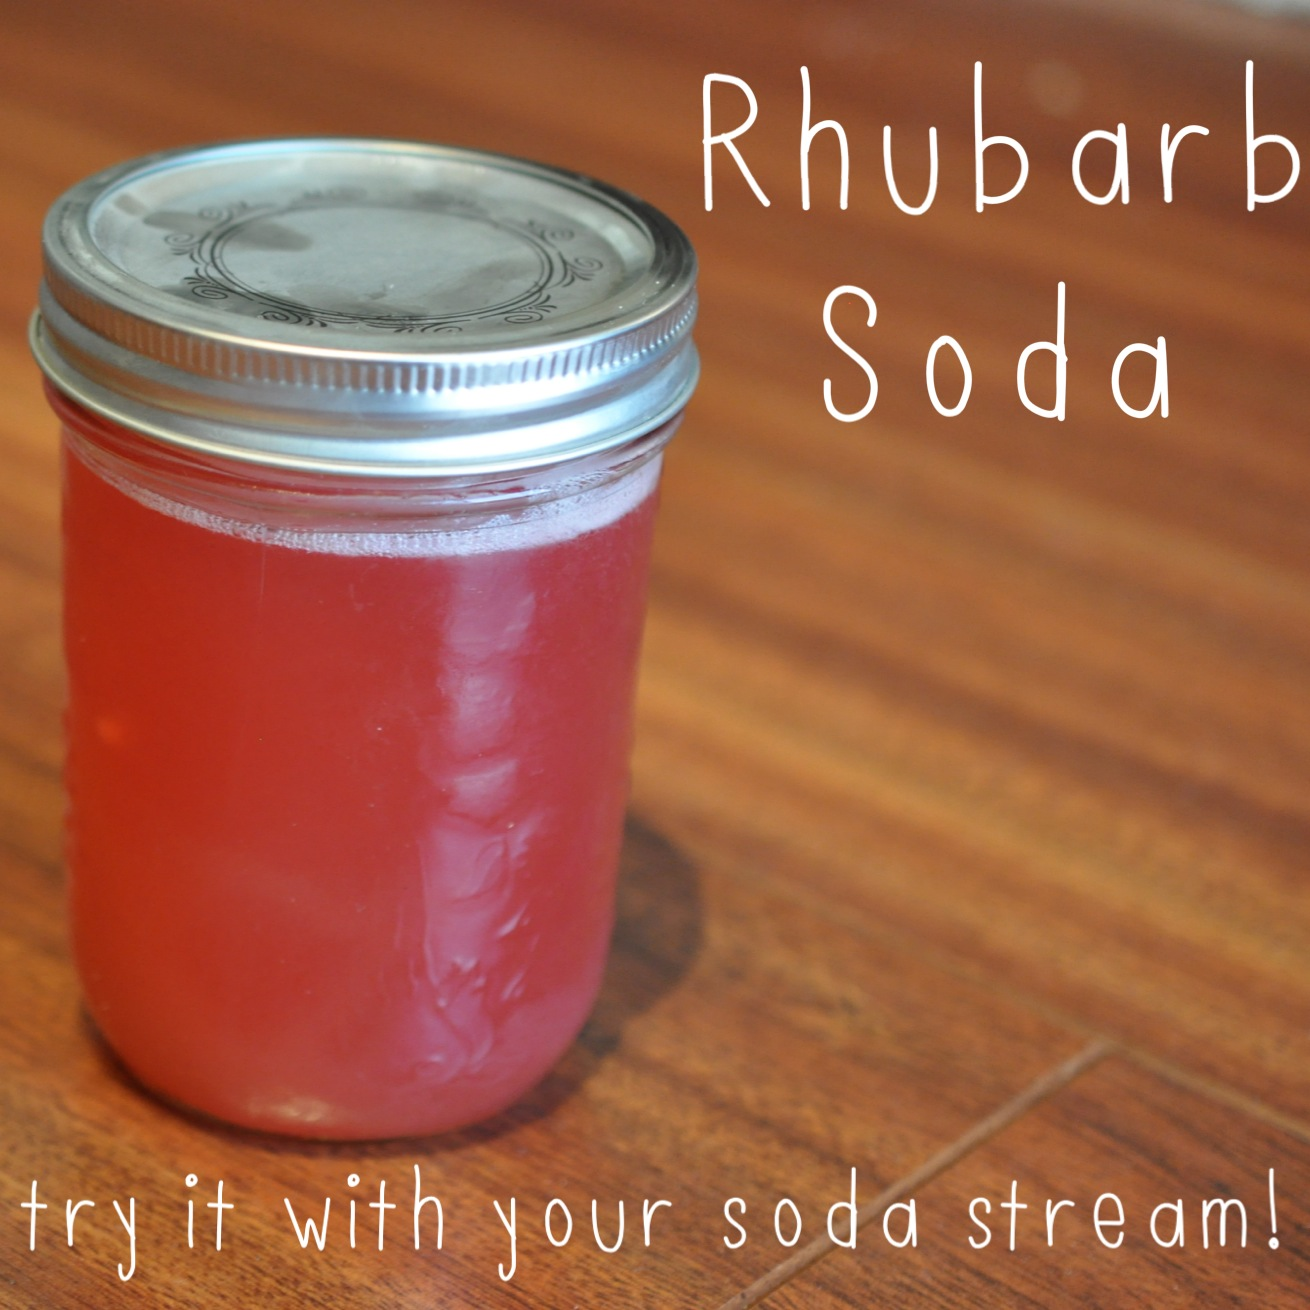 own soda campari and soda elderflower soda diy grape soda kiwi soda ...